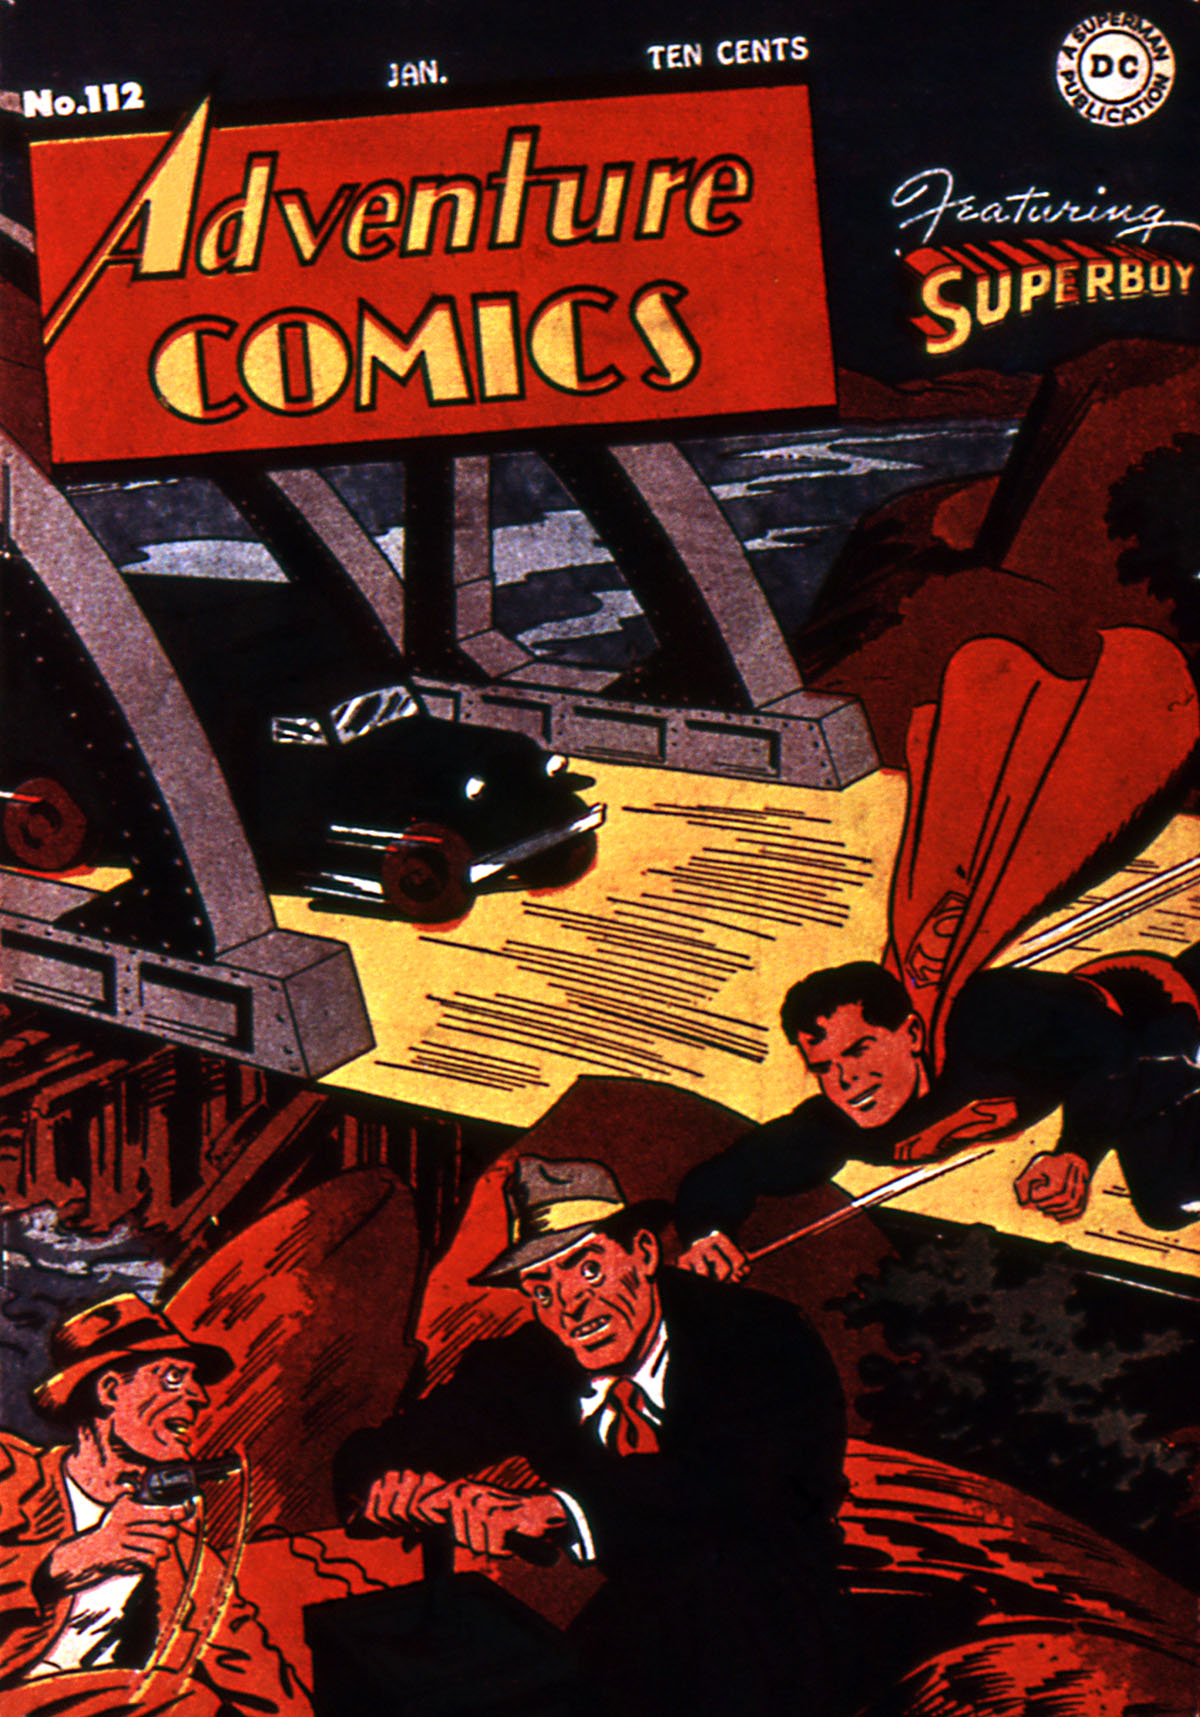 Read online Adventure Comics (1938) comic -  Issue #112 - 1